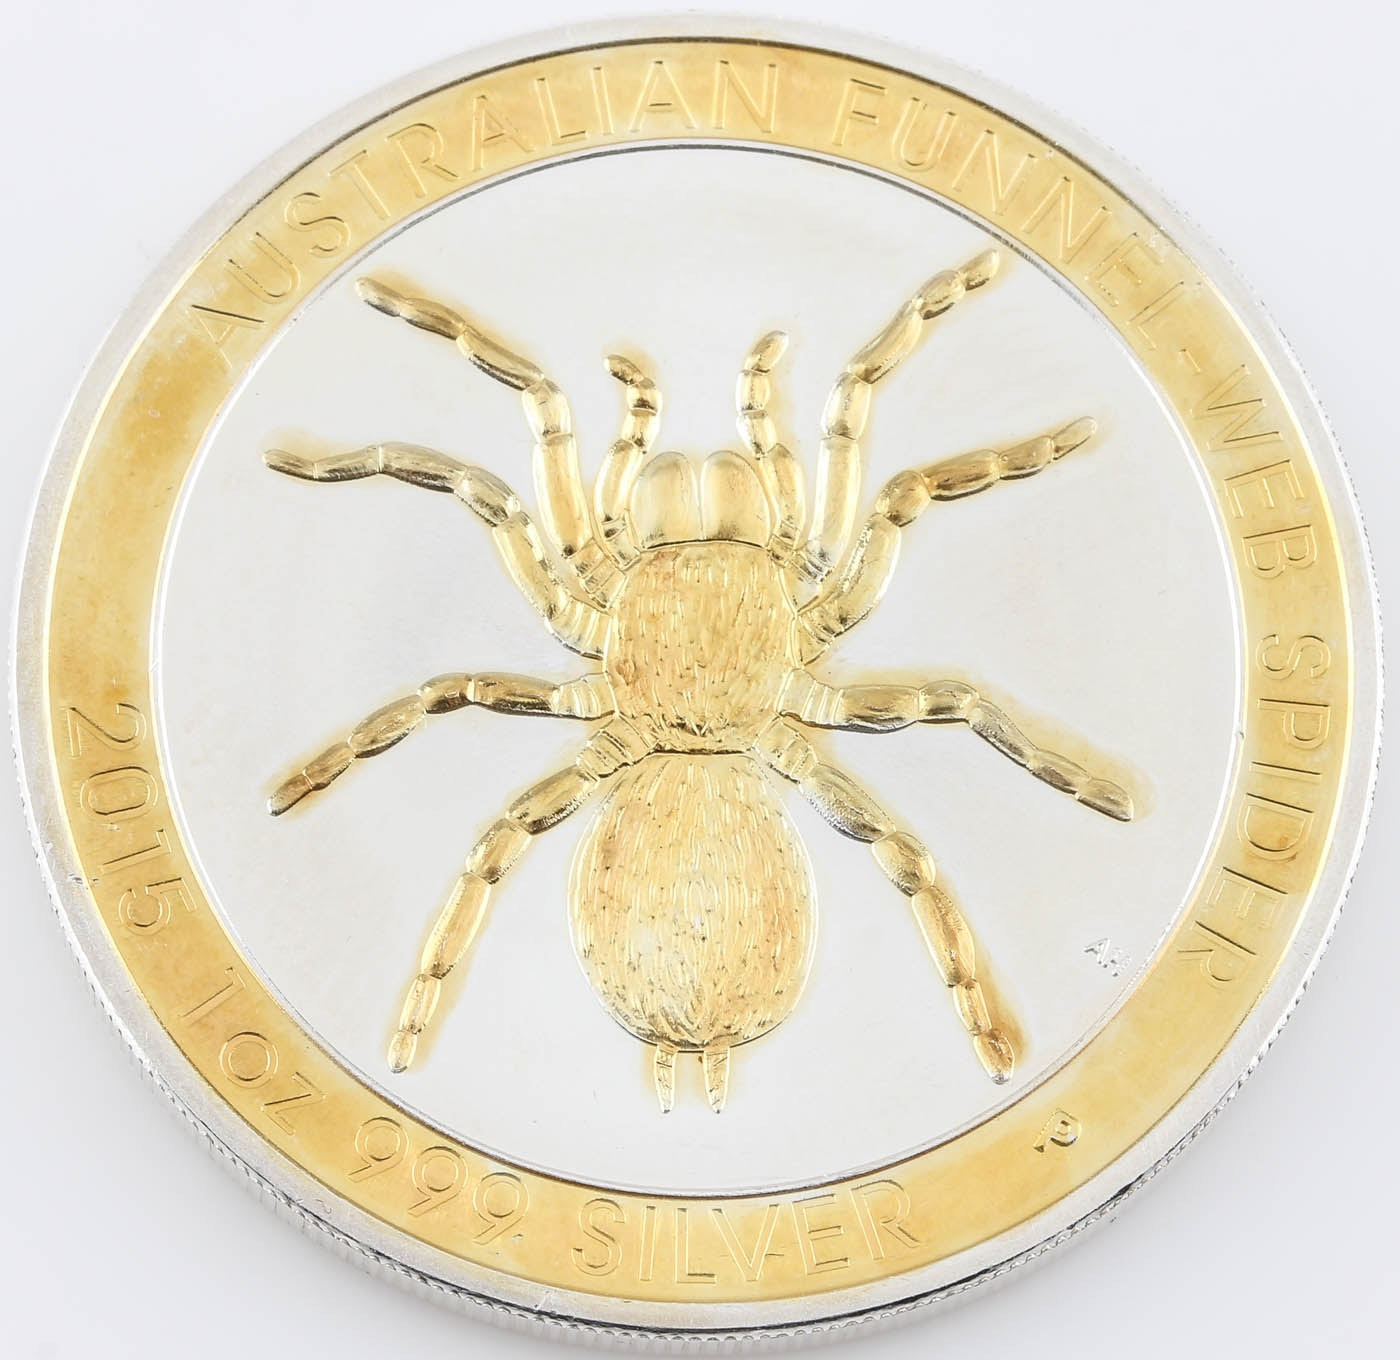 2015 Australia $1 Silver Funnel Web Spider Coin with Gold Highlights